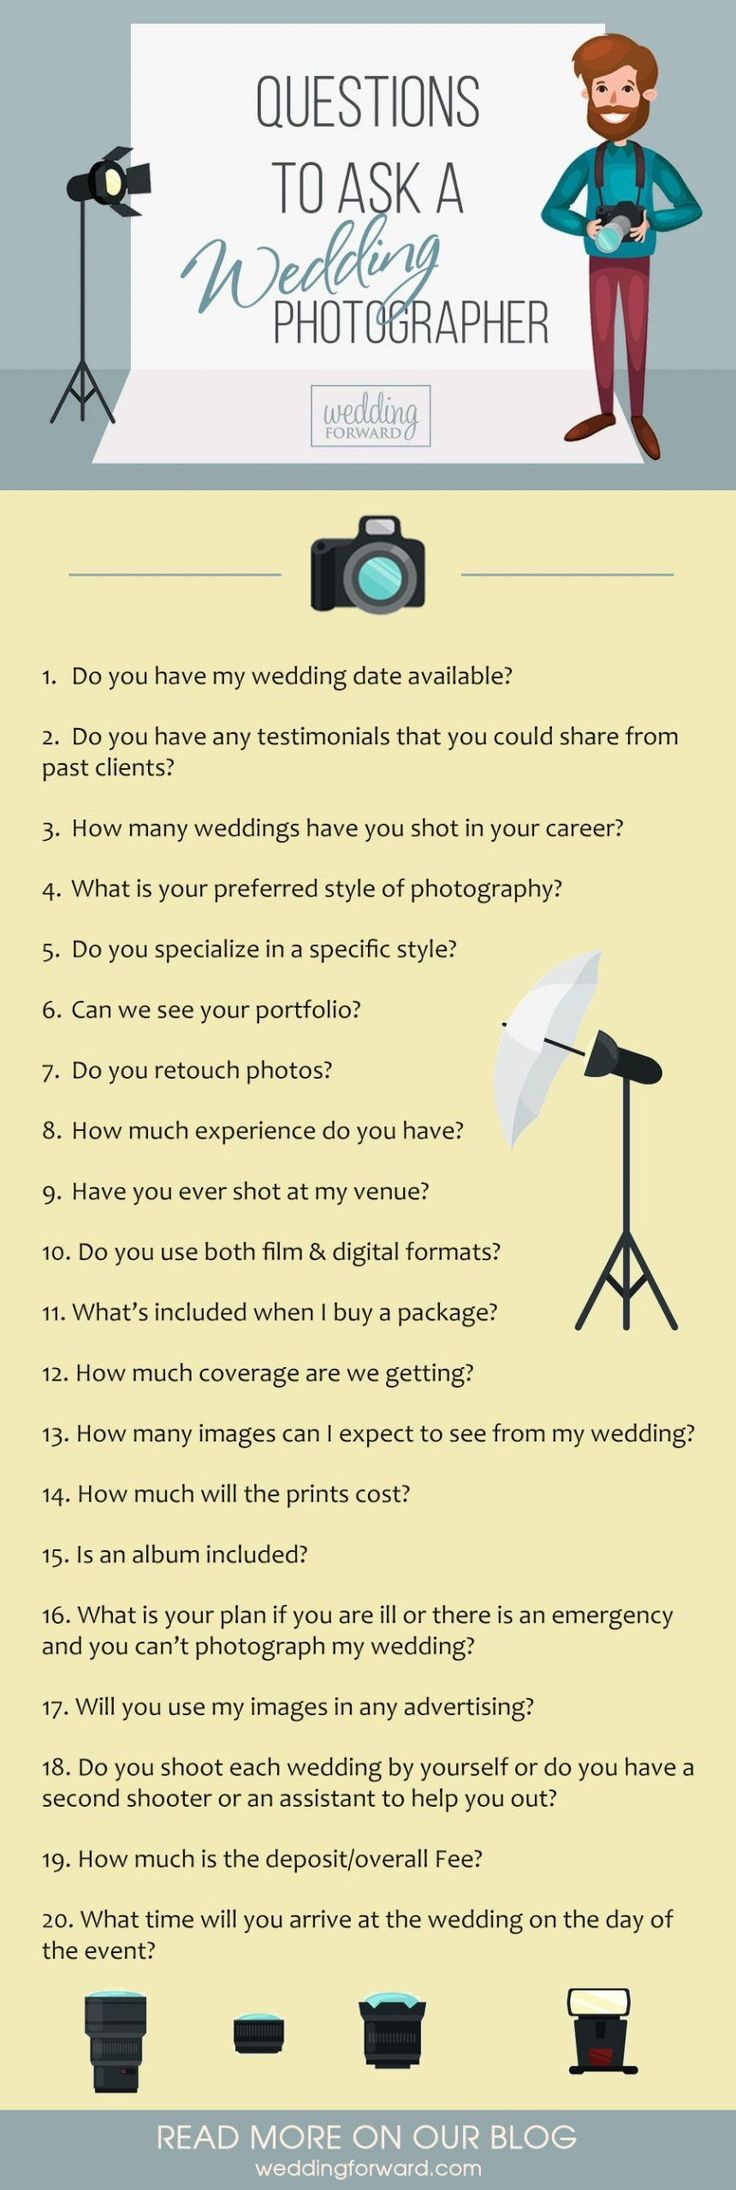 Average Wedding Photographer Cost 2020 Guide in 2020